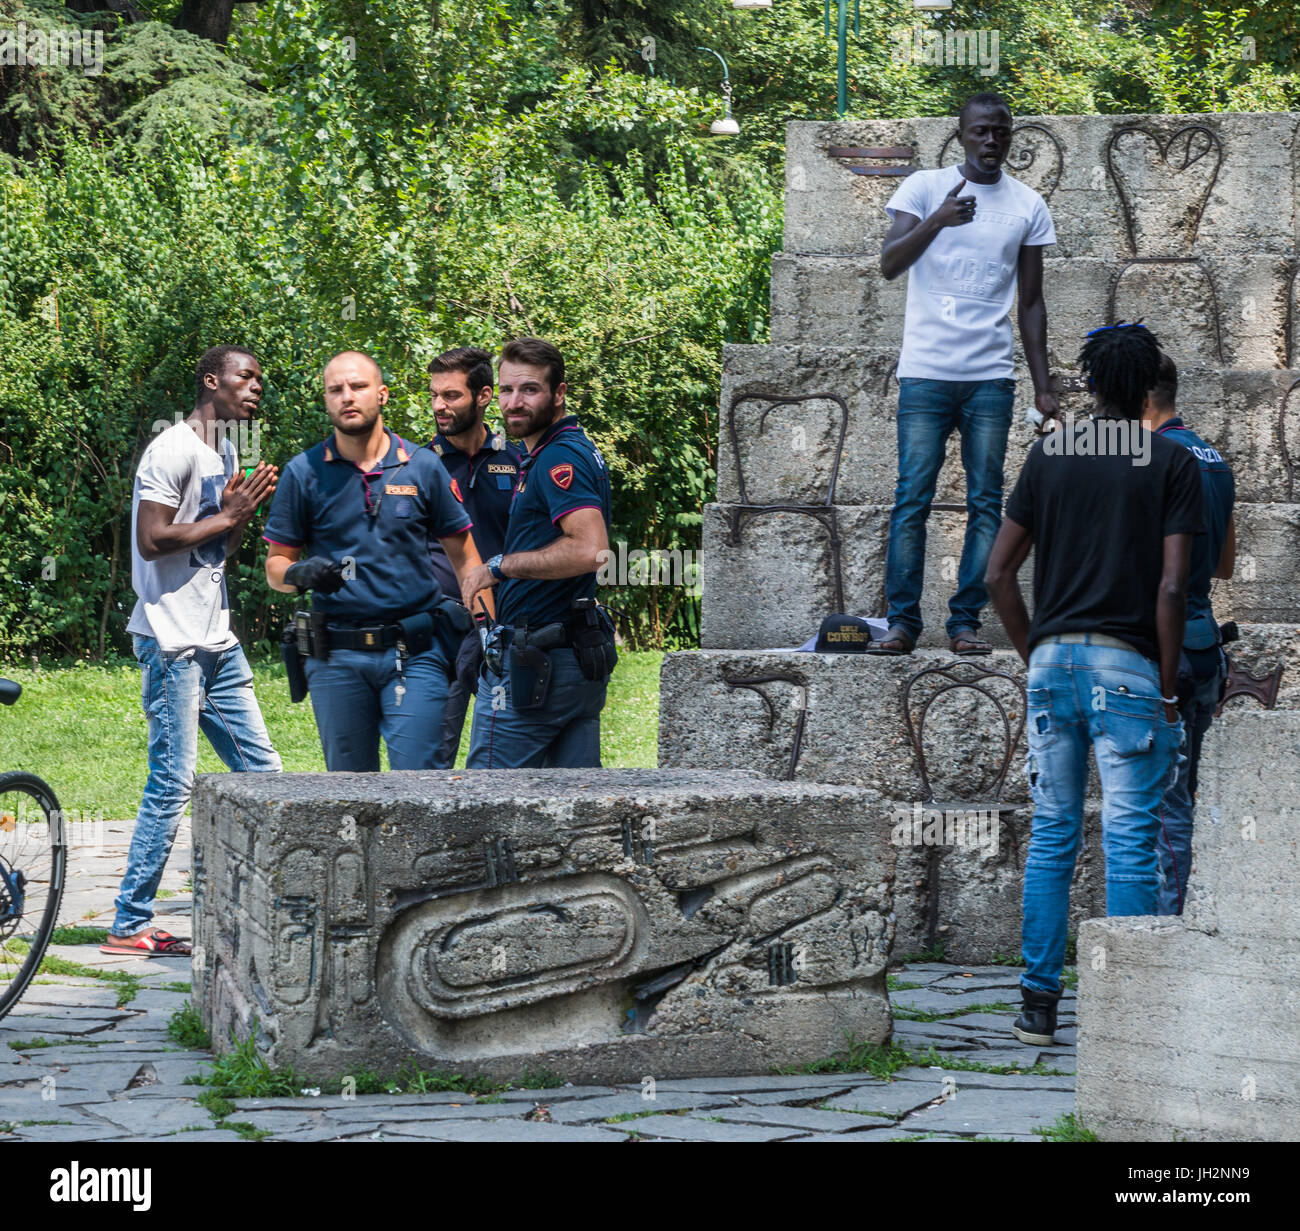 milan-italy-12th-july-2017-a-man-who-appears-to-be-a-migrant-pleads-JH2NN9.jpg